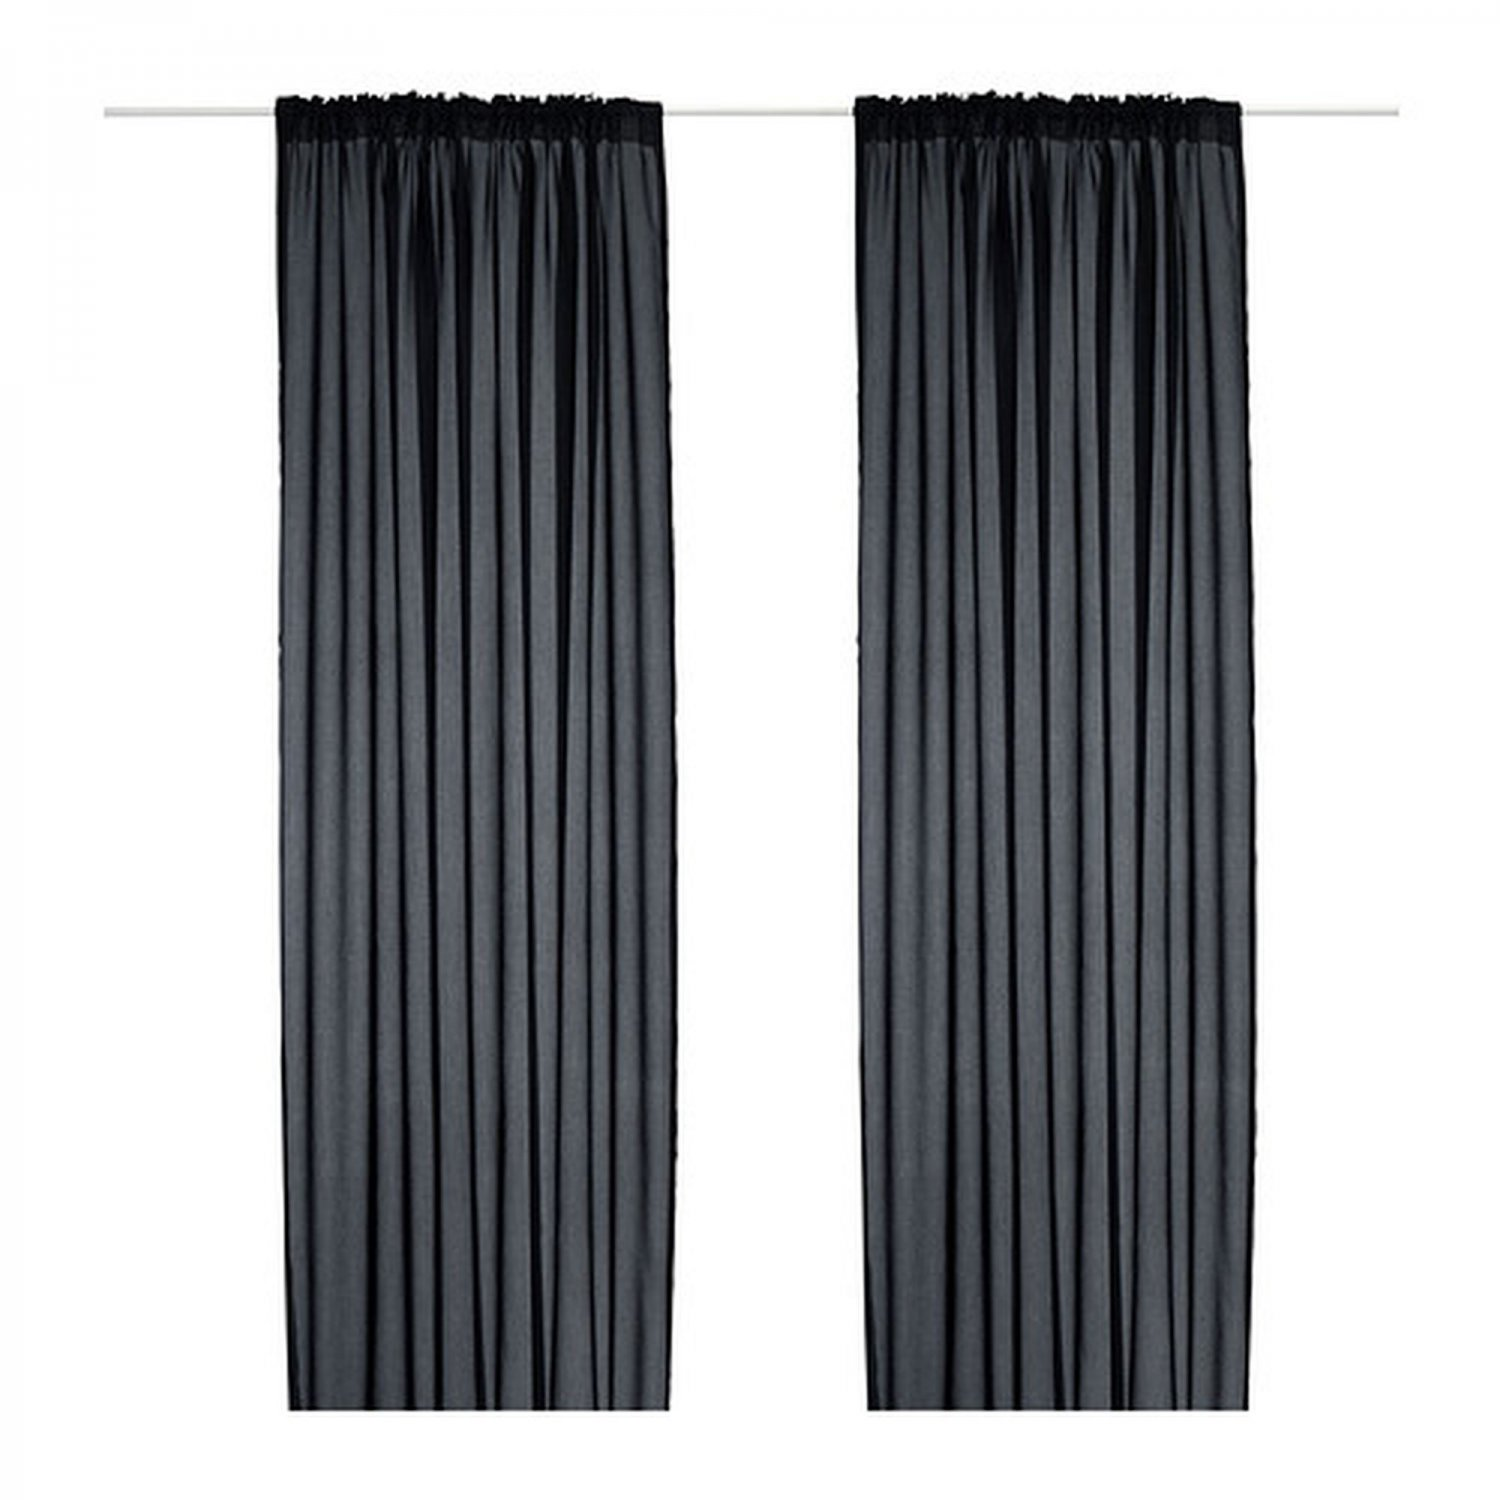 Ikea vivan curtains drapes black 2 panels for Ikea curtain rods uk